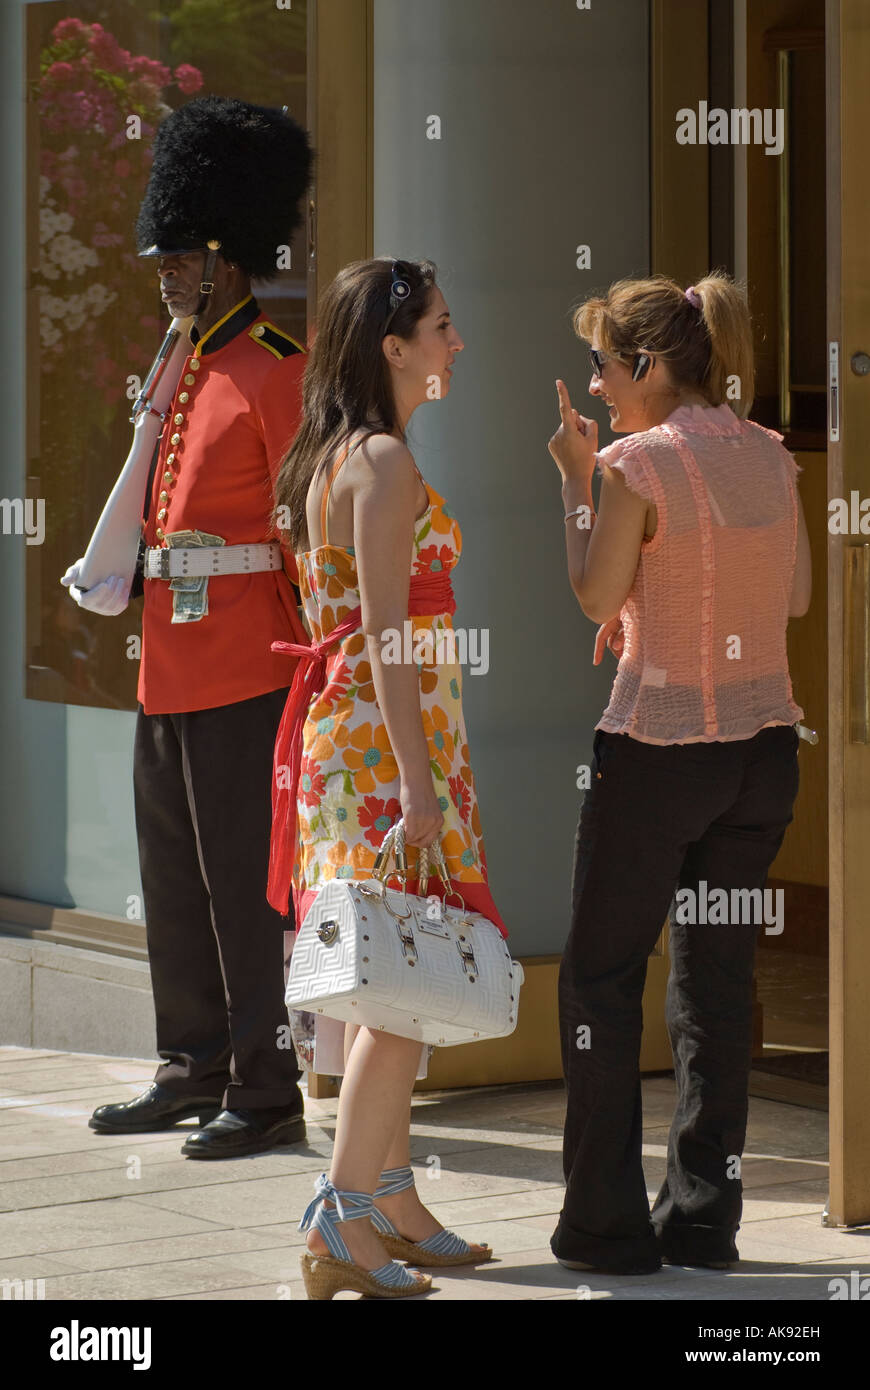 Shoppers And Grenadier Guarding Shop Entrance At 2 Rodeo Drive, Beverly  Hills, California,